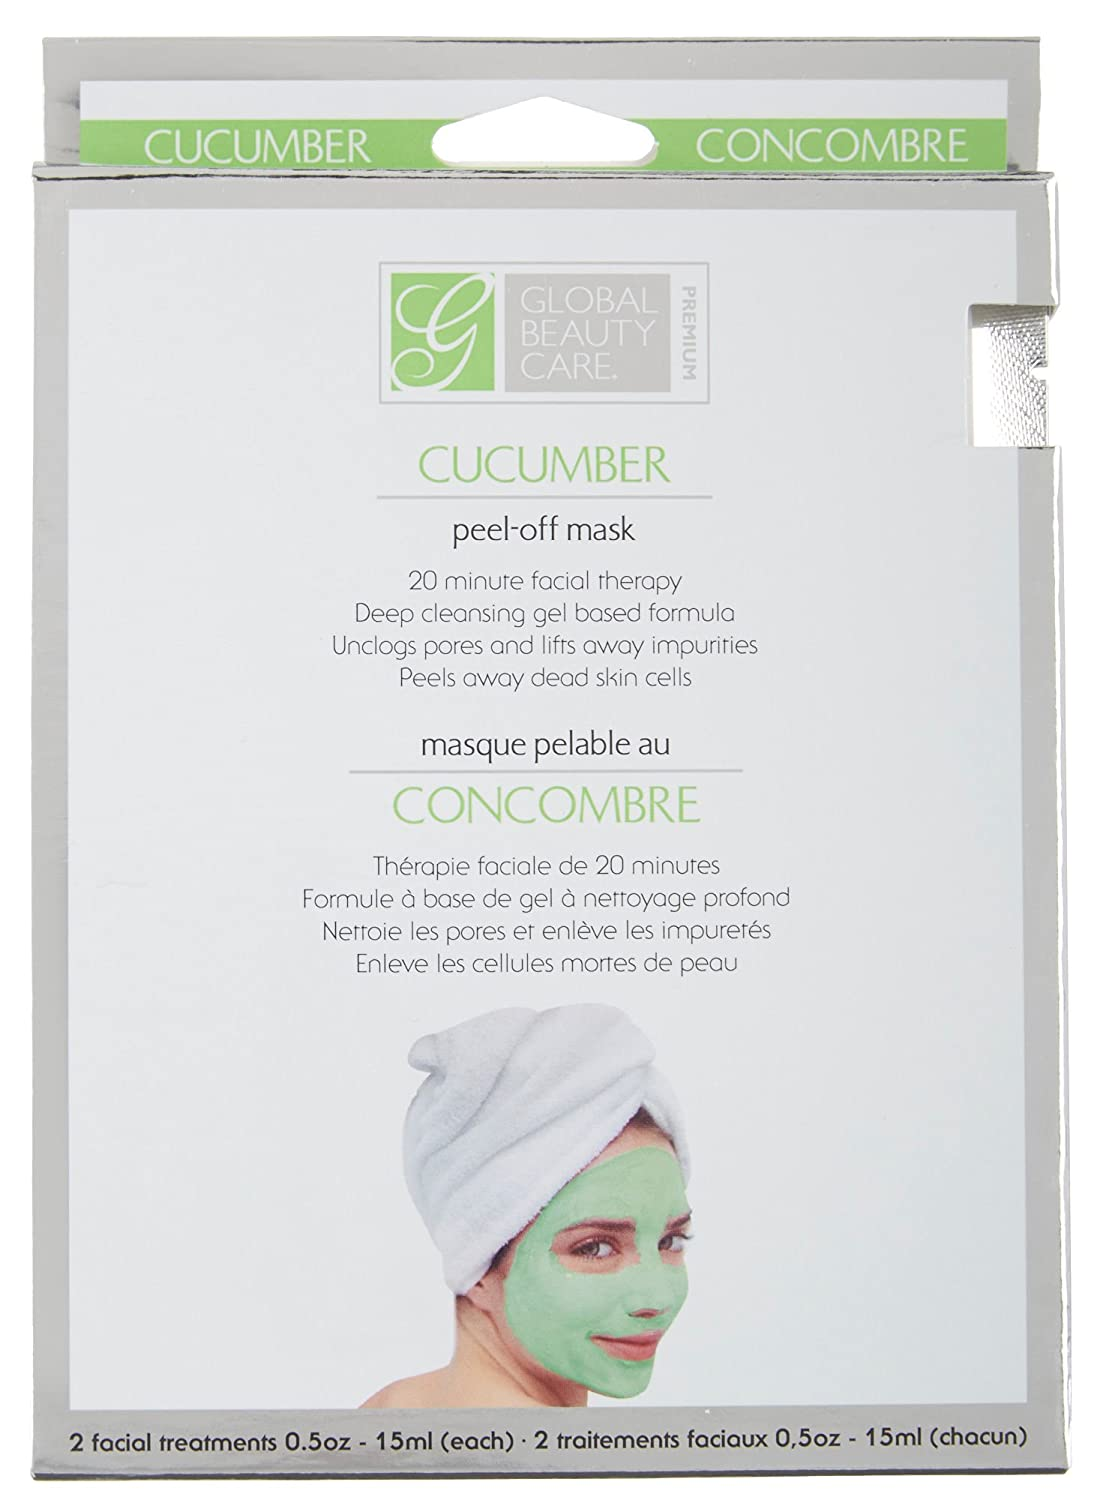 Global Beauty Care Premium Cucumber Peel Off Mask 20 Minute Facial Therapy Contains 2 Facial Treatments